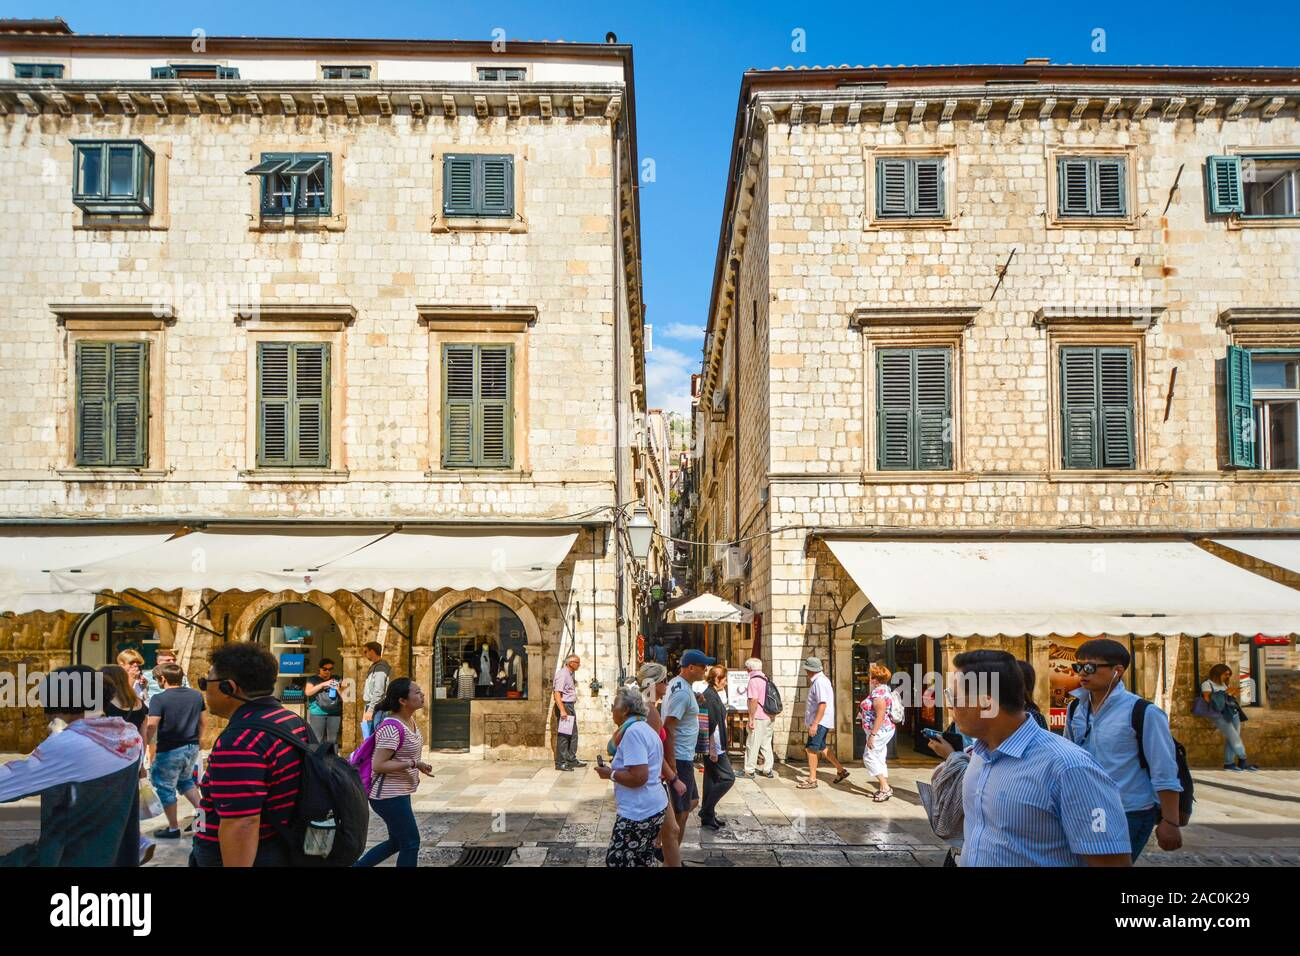 Tourists walk the main street or Stradun as they pass a narrow staircase up to the wall in the walled city of Dubrovnik Croatia. Stock Photo